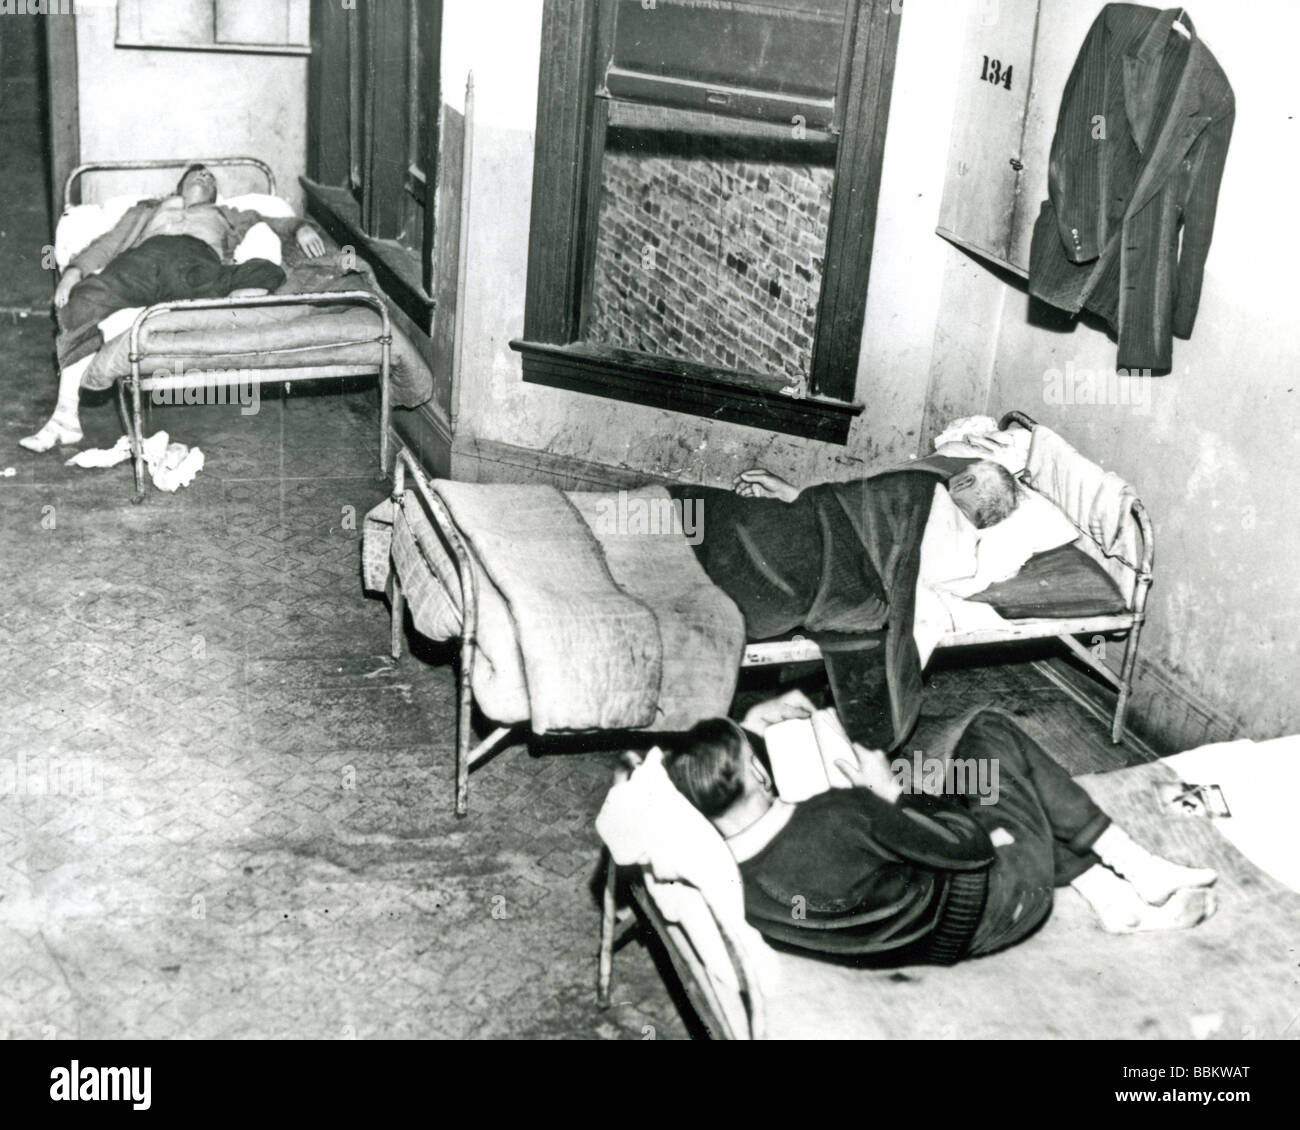 CHICAGO flophouse during the Great Depression of the 1930s - Stock Image